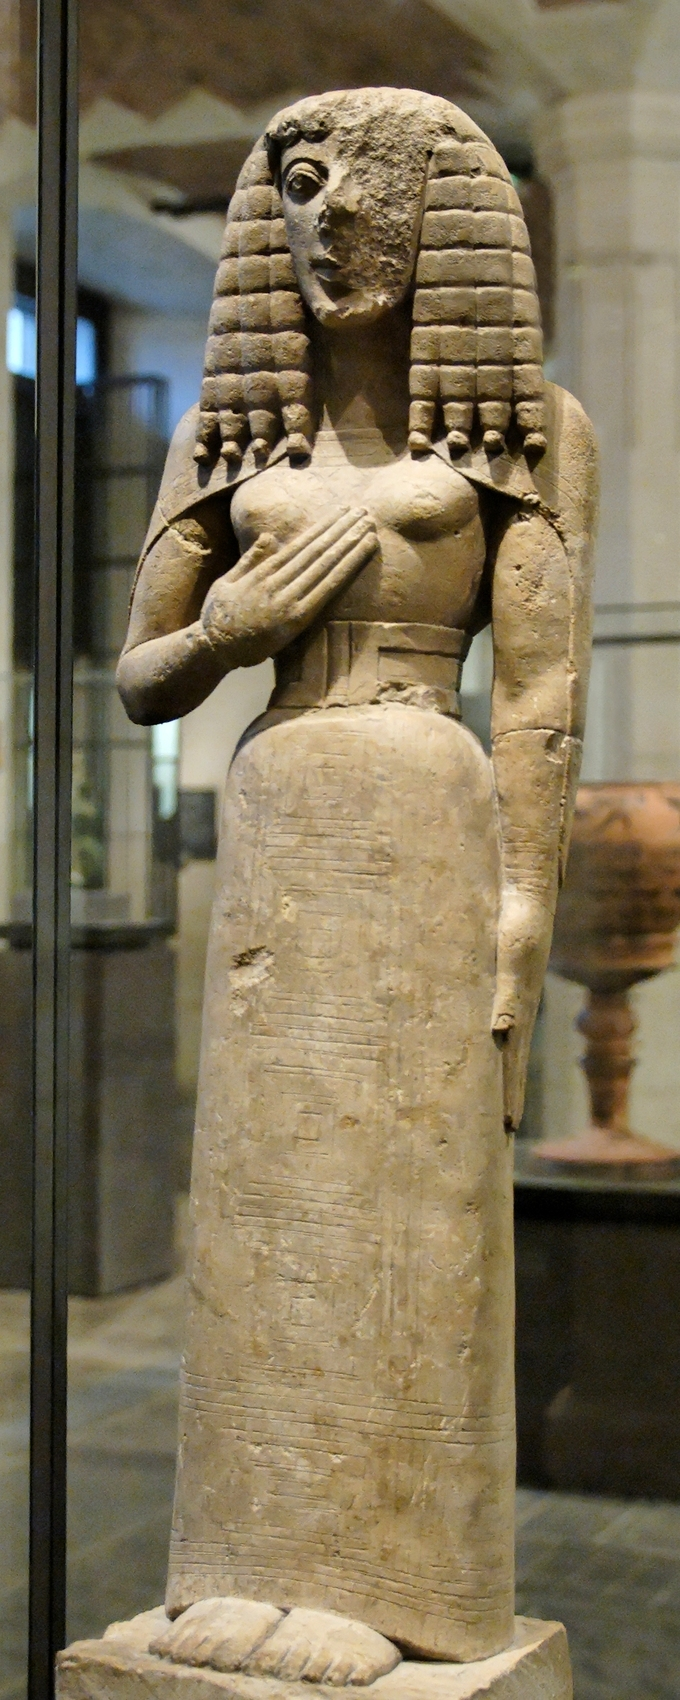 This is a color photo of The Lady of Auxerre, a limestone statue depicting a woman. Her hair is stylized and she wears a long, narrow dress cinched in at the waist, her feet stick out from under its hem. Part of the statue's face has crumbled.